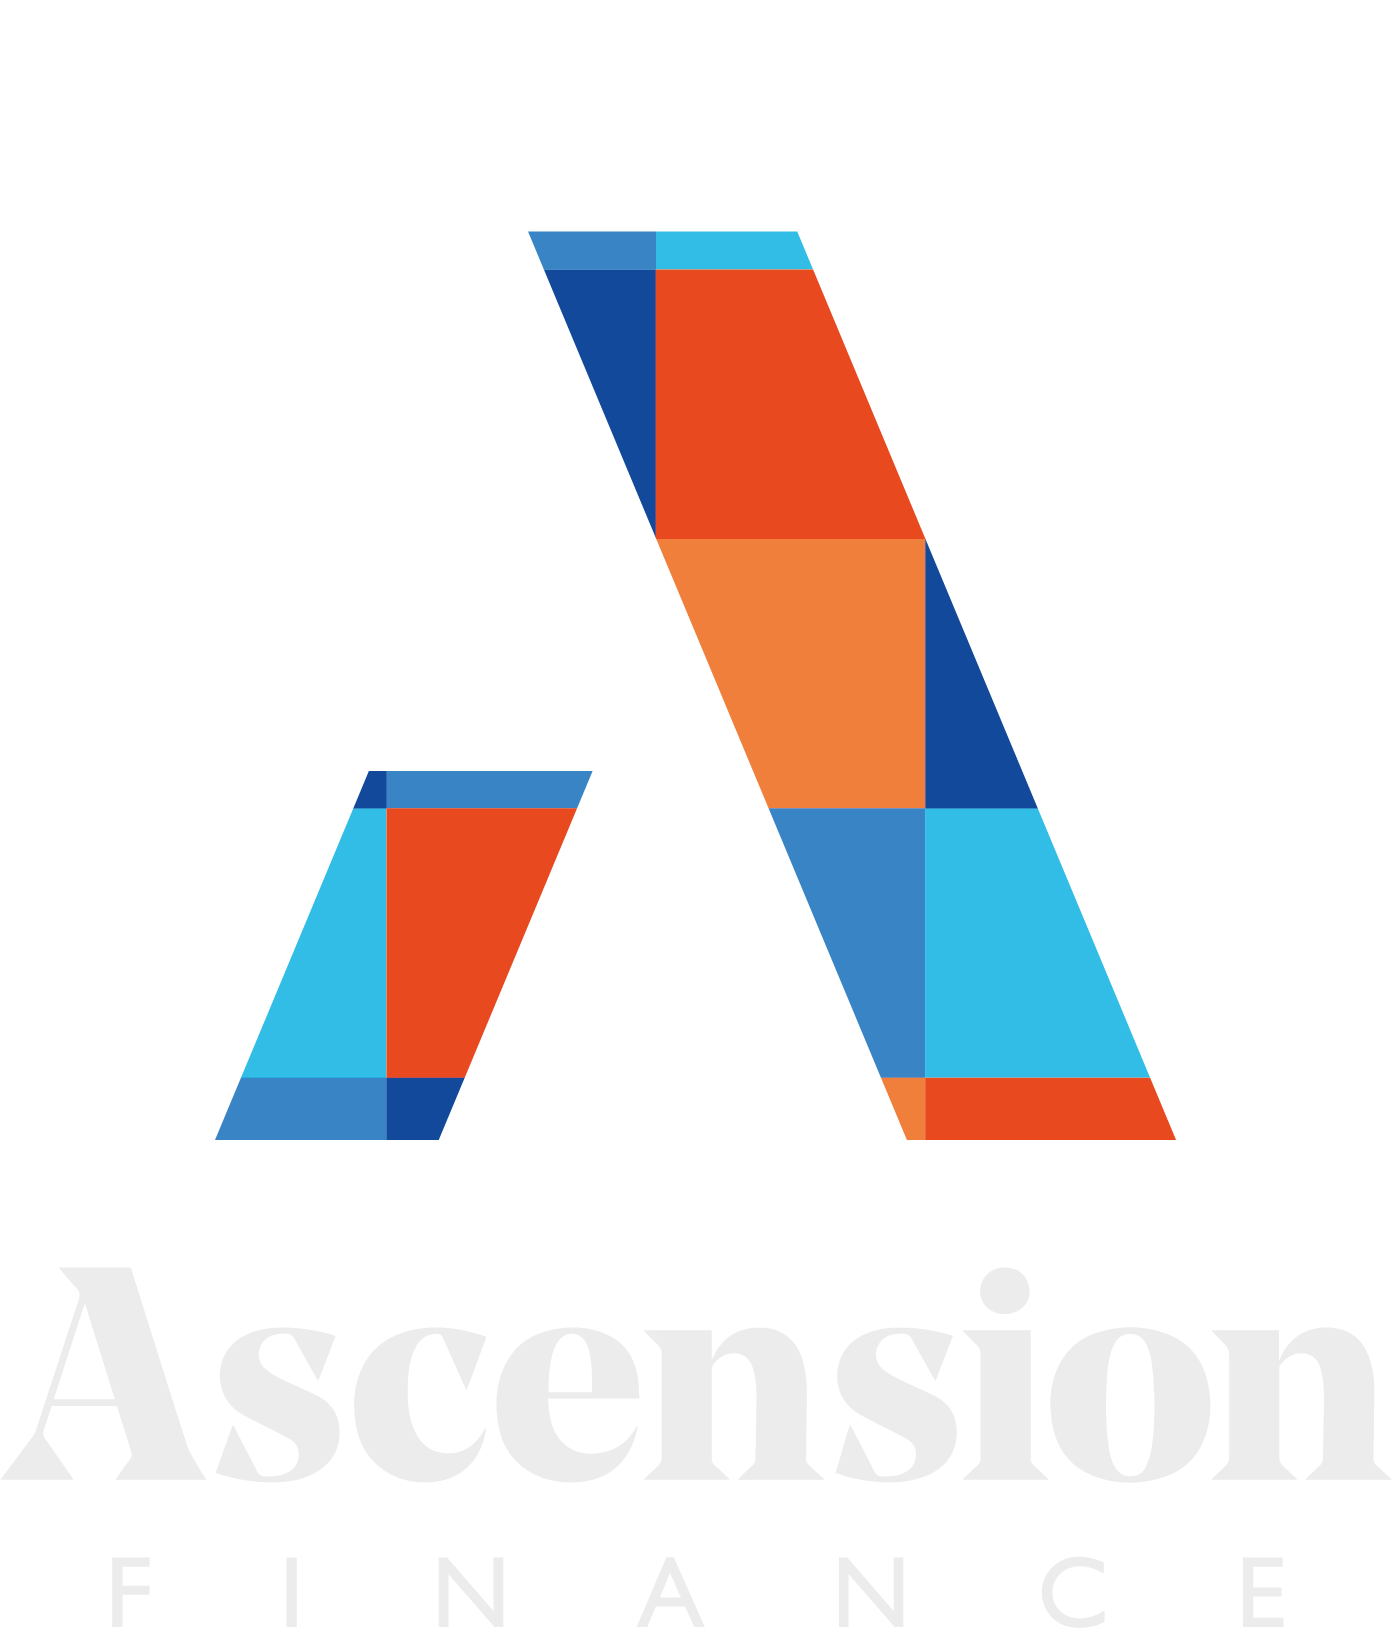 Ascension Finance